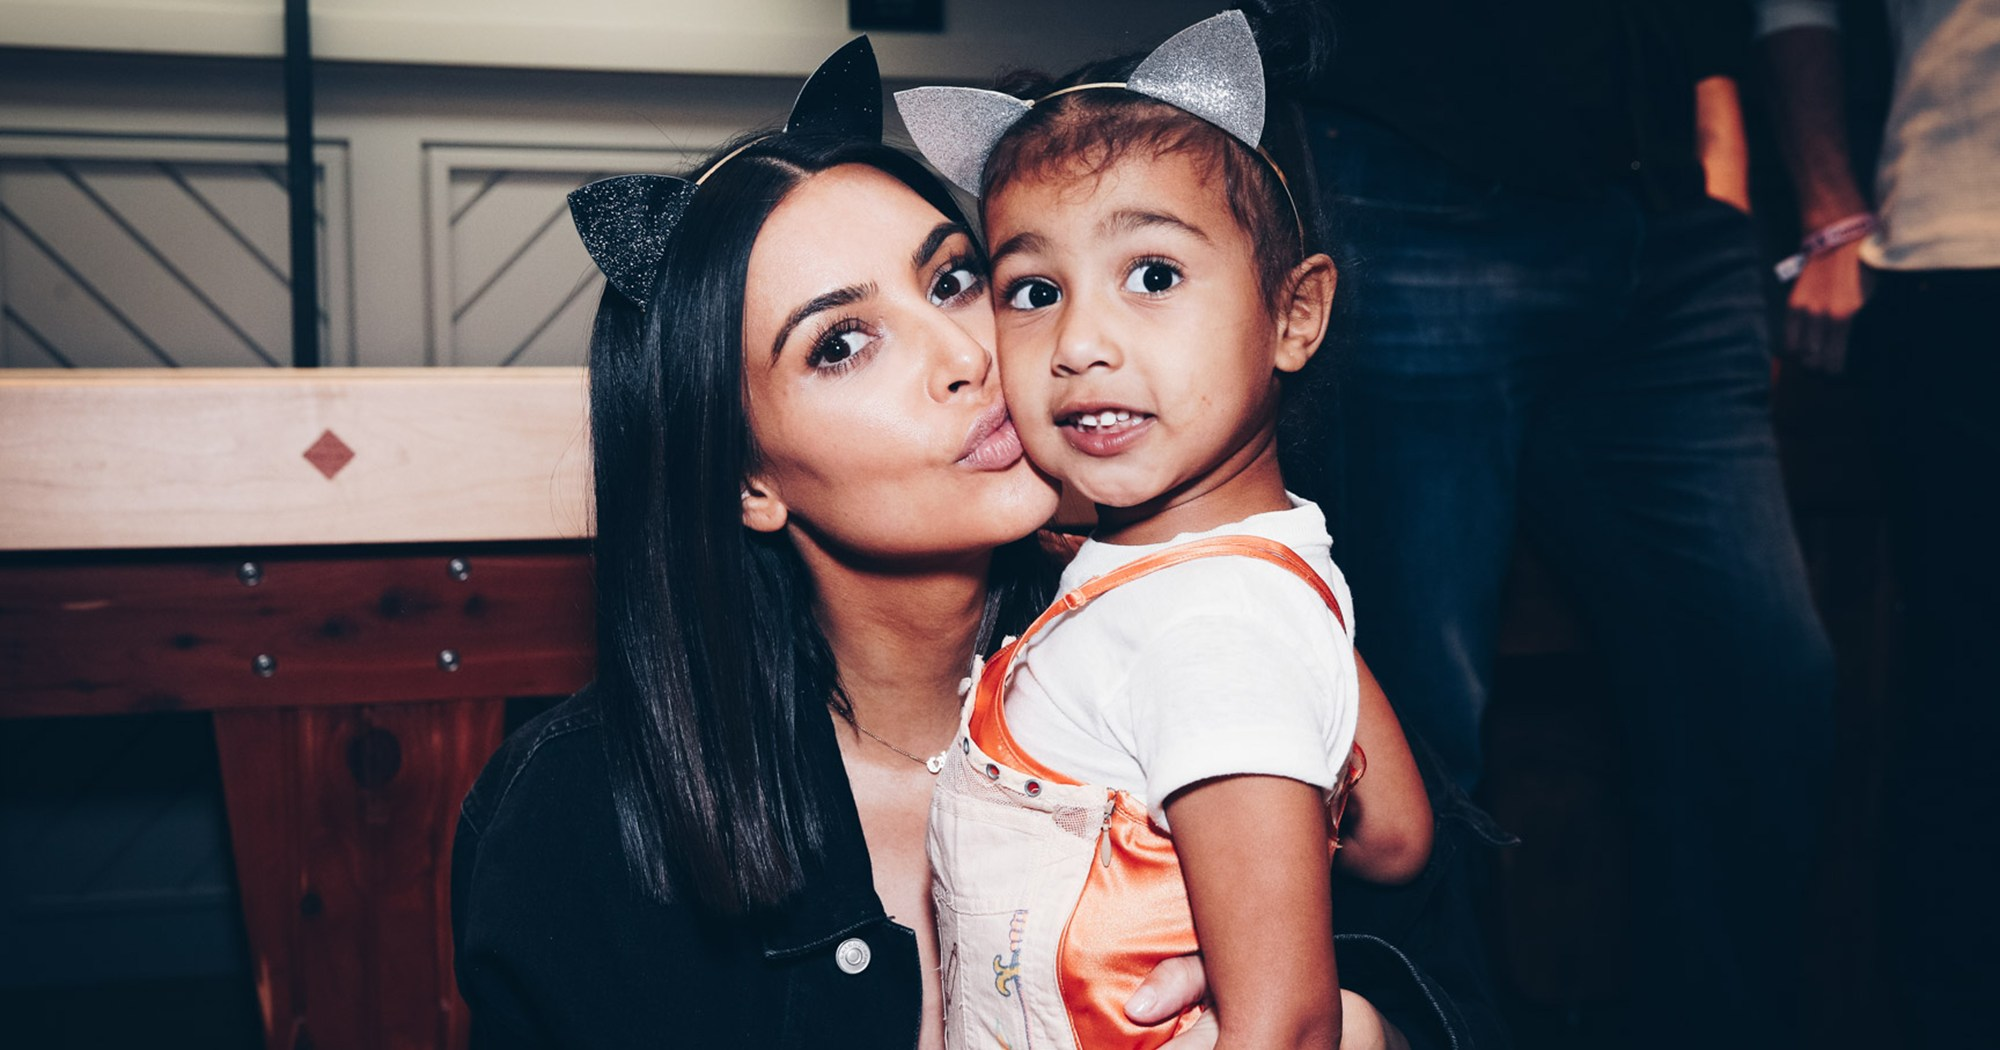 Kim Kardashian Is a Hands-On Mom With North, Saint, Chicago